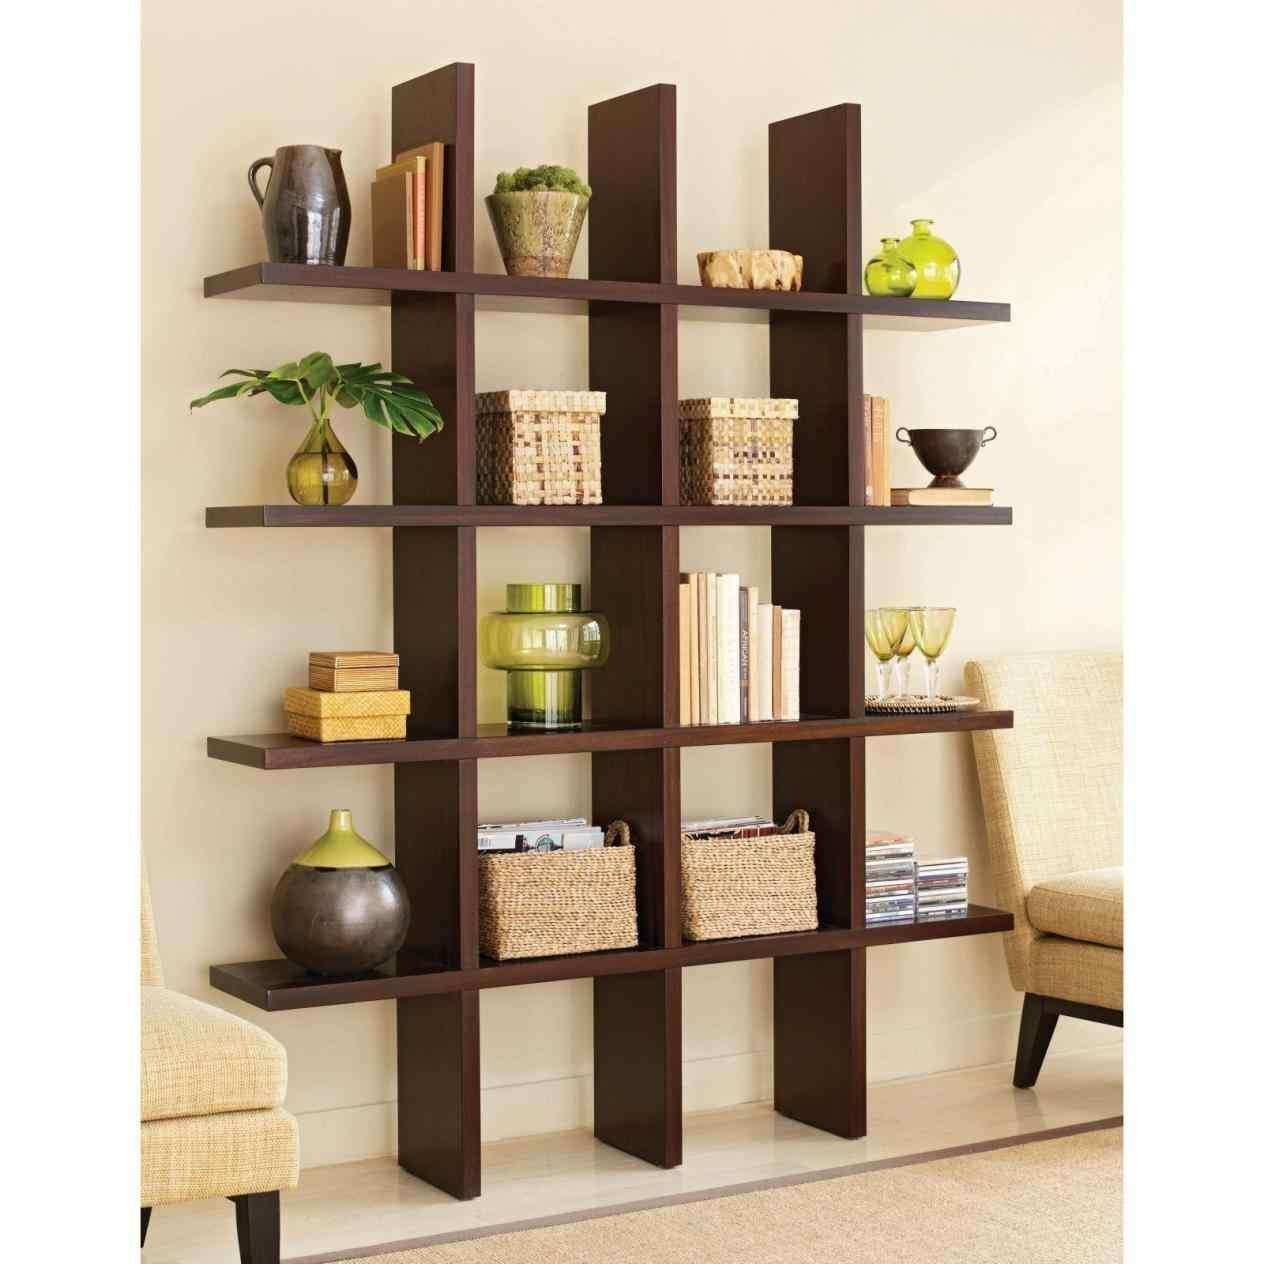 Fullsize Of Living Room Wall Shelves Ideas